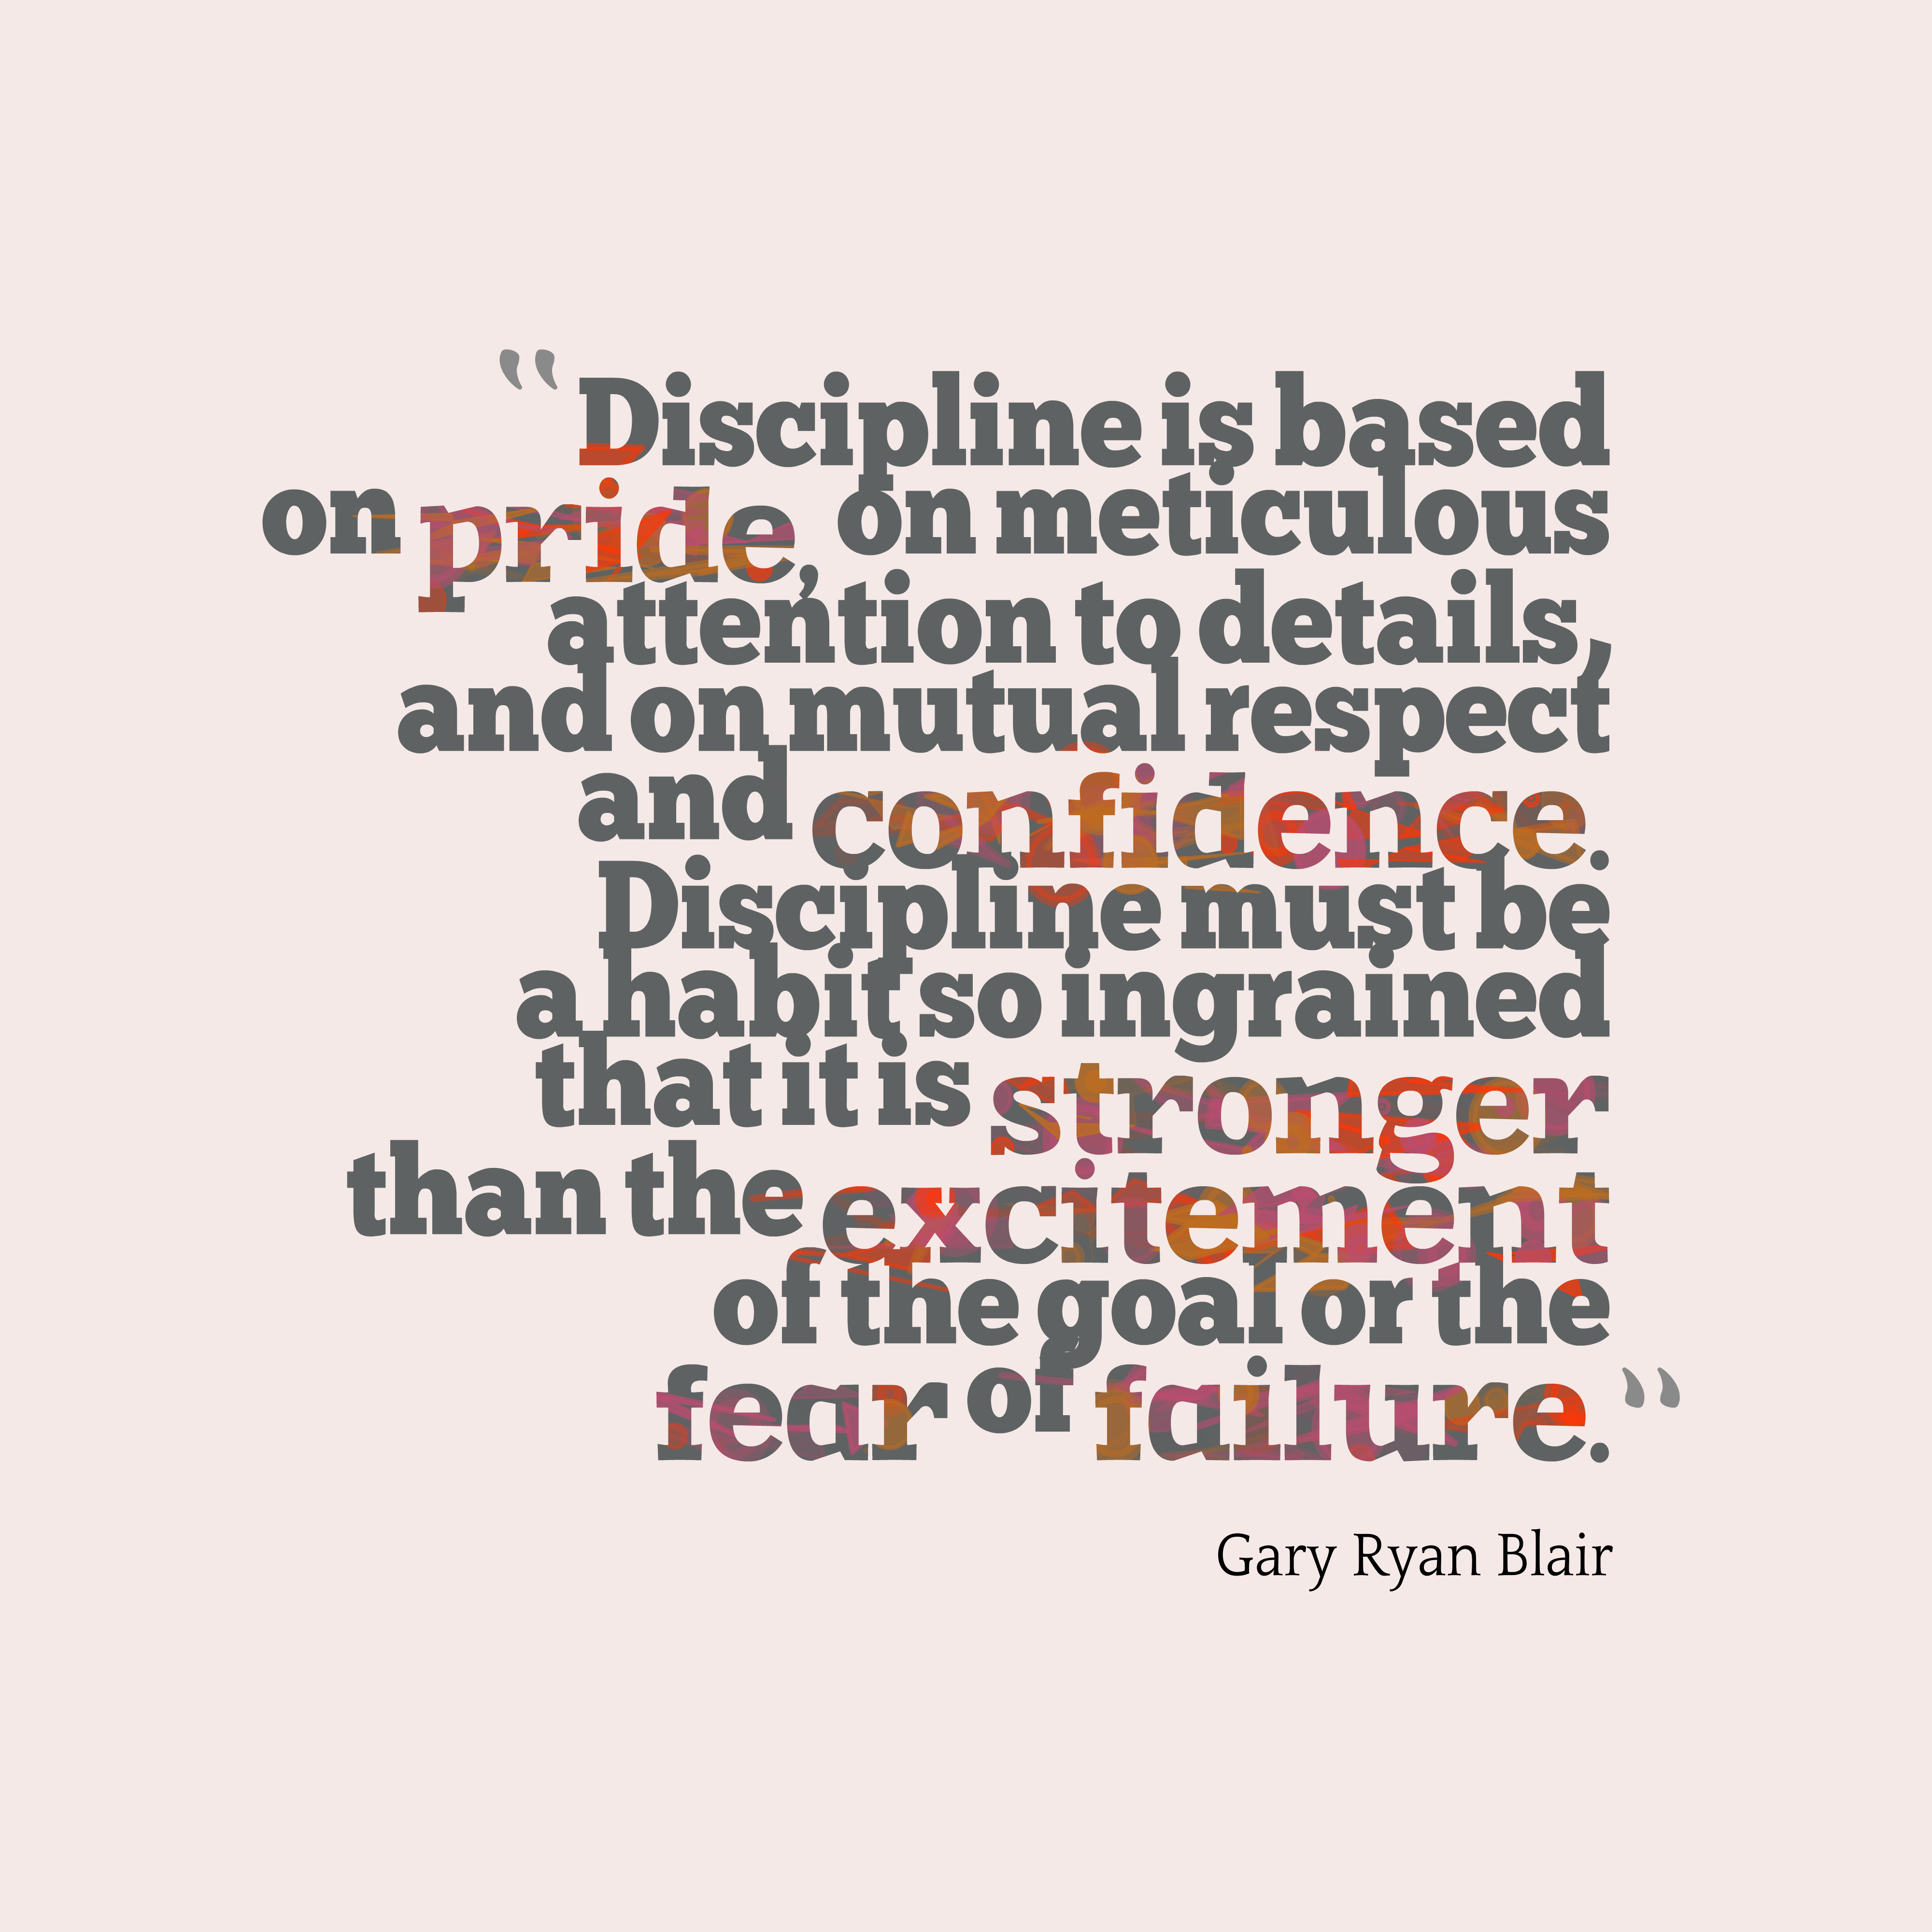 Quotes image of Discipline is based on pride, on meticulous attention to details, and on mutual respect and confidence. Discipline must be a habit so ingrained that it is stronger than the excitement of the goal or the fear of failure.